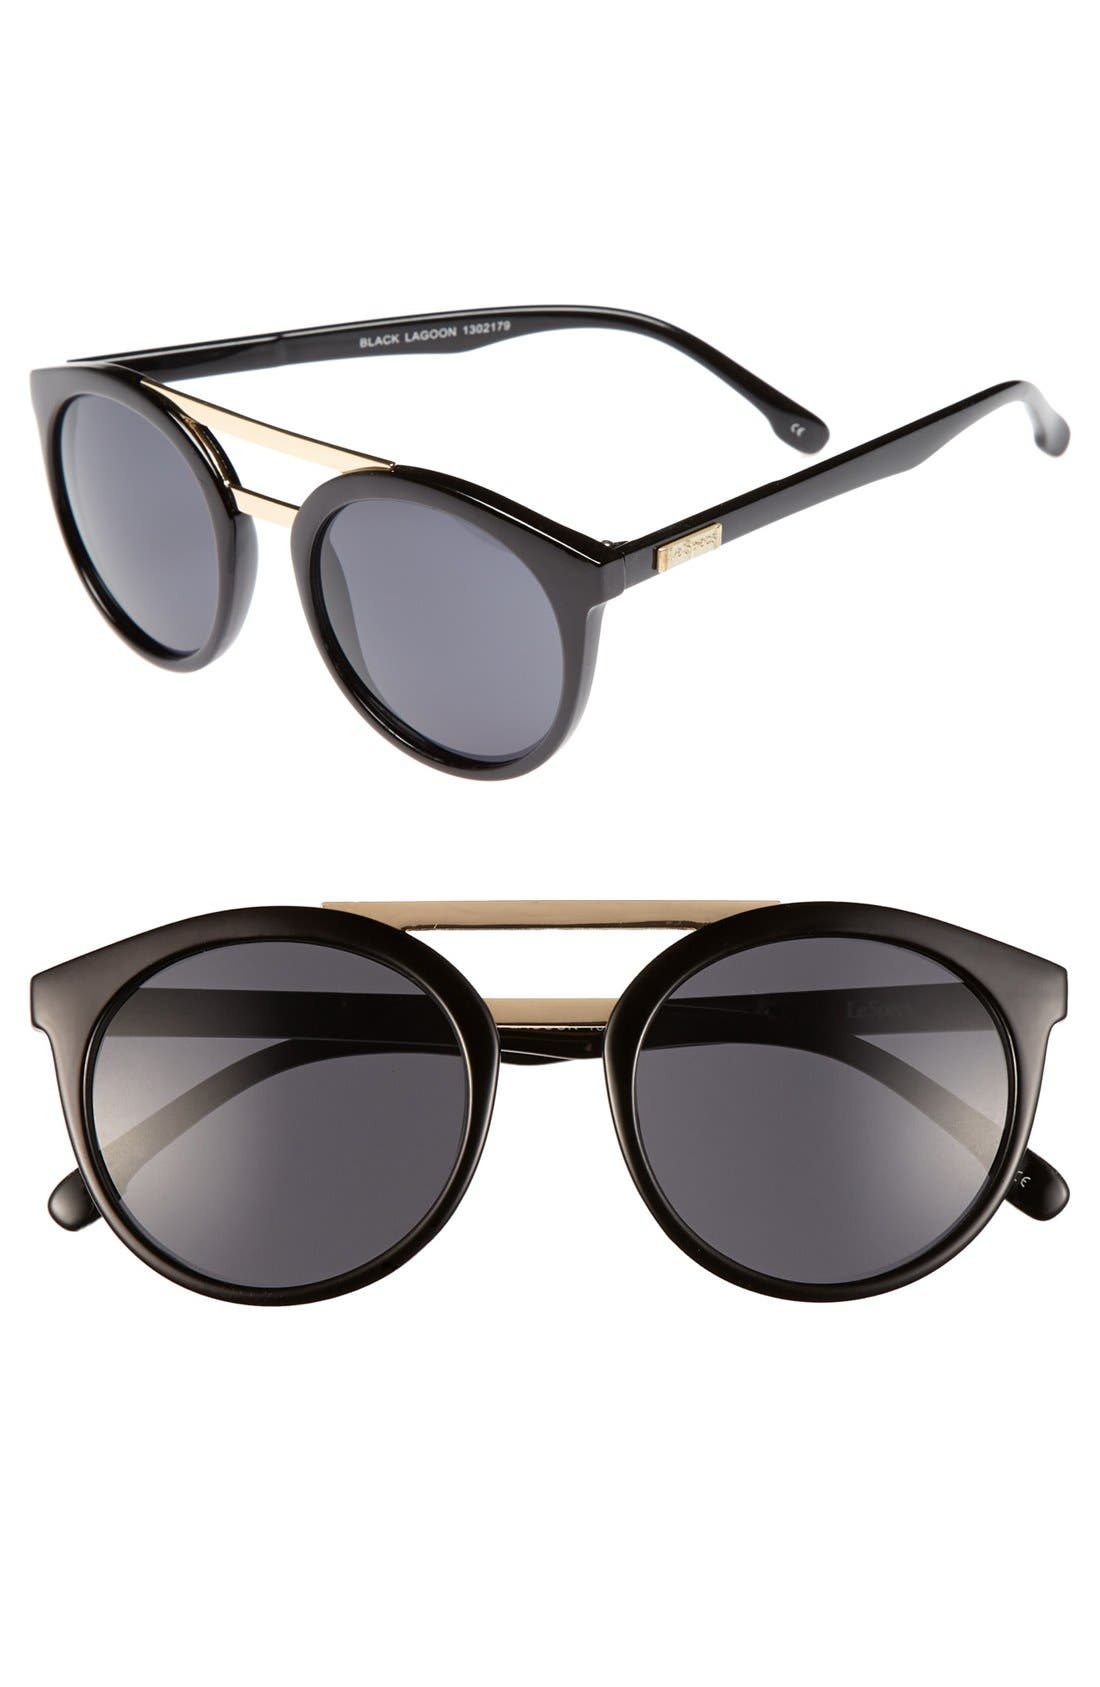 Main Image - Le Specs 49mm Retro Sunglasses